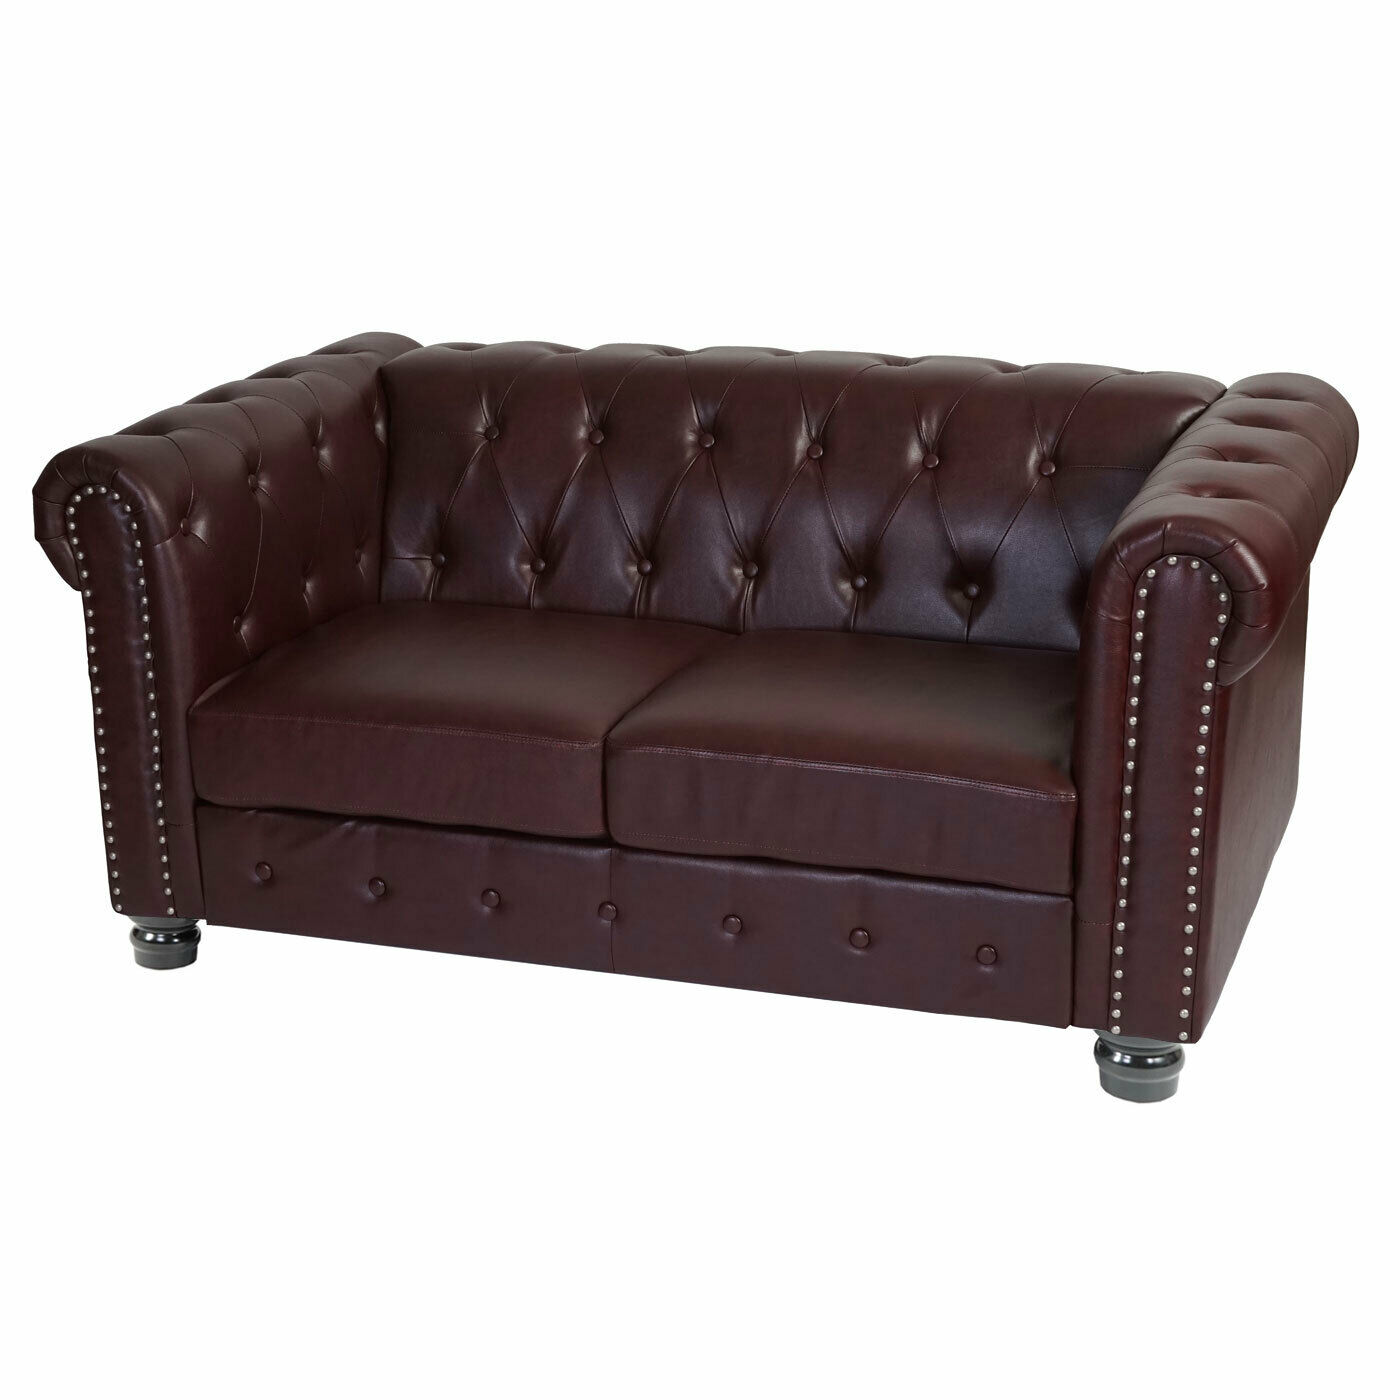 LUXUS 2ER SOFA Loungesofa Couch Chesterfield Edinburgh, runde Füße ...